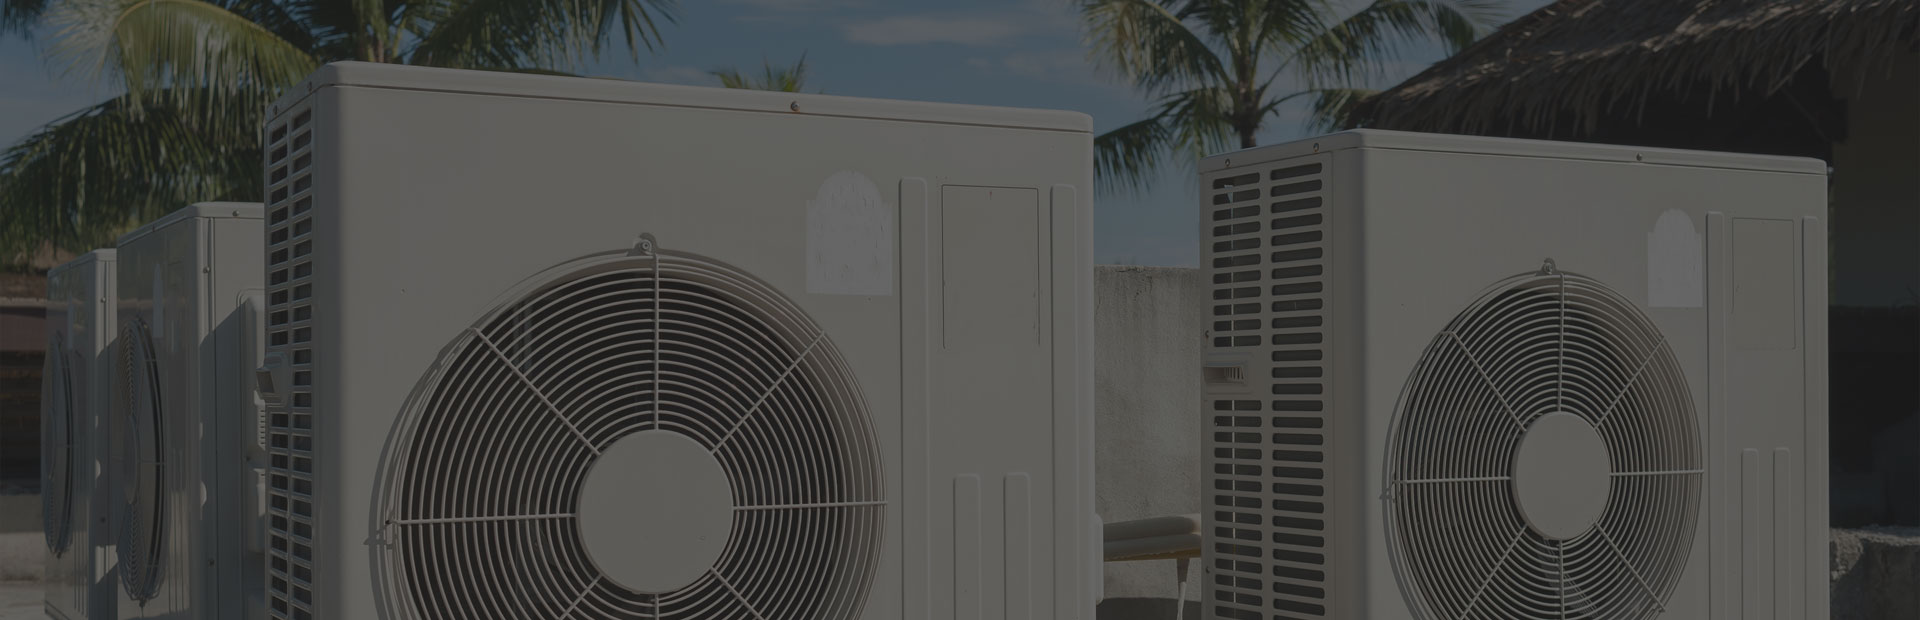 two air conditioners with palms on a background